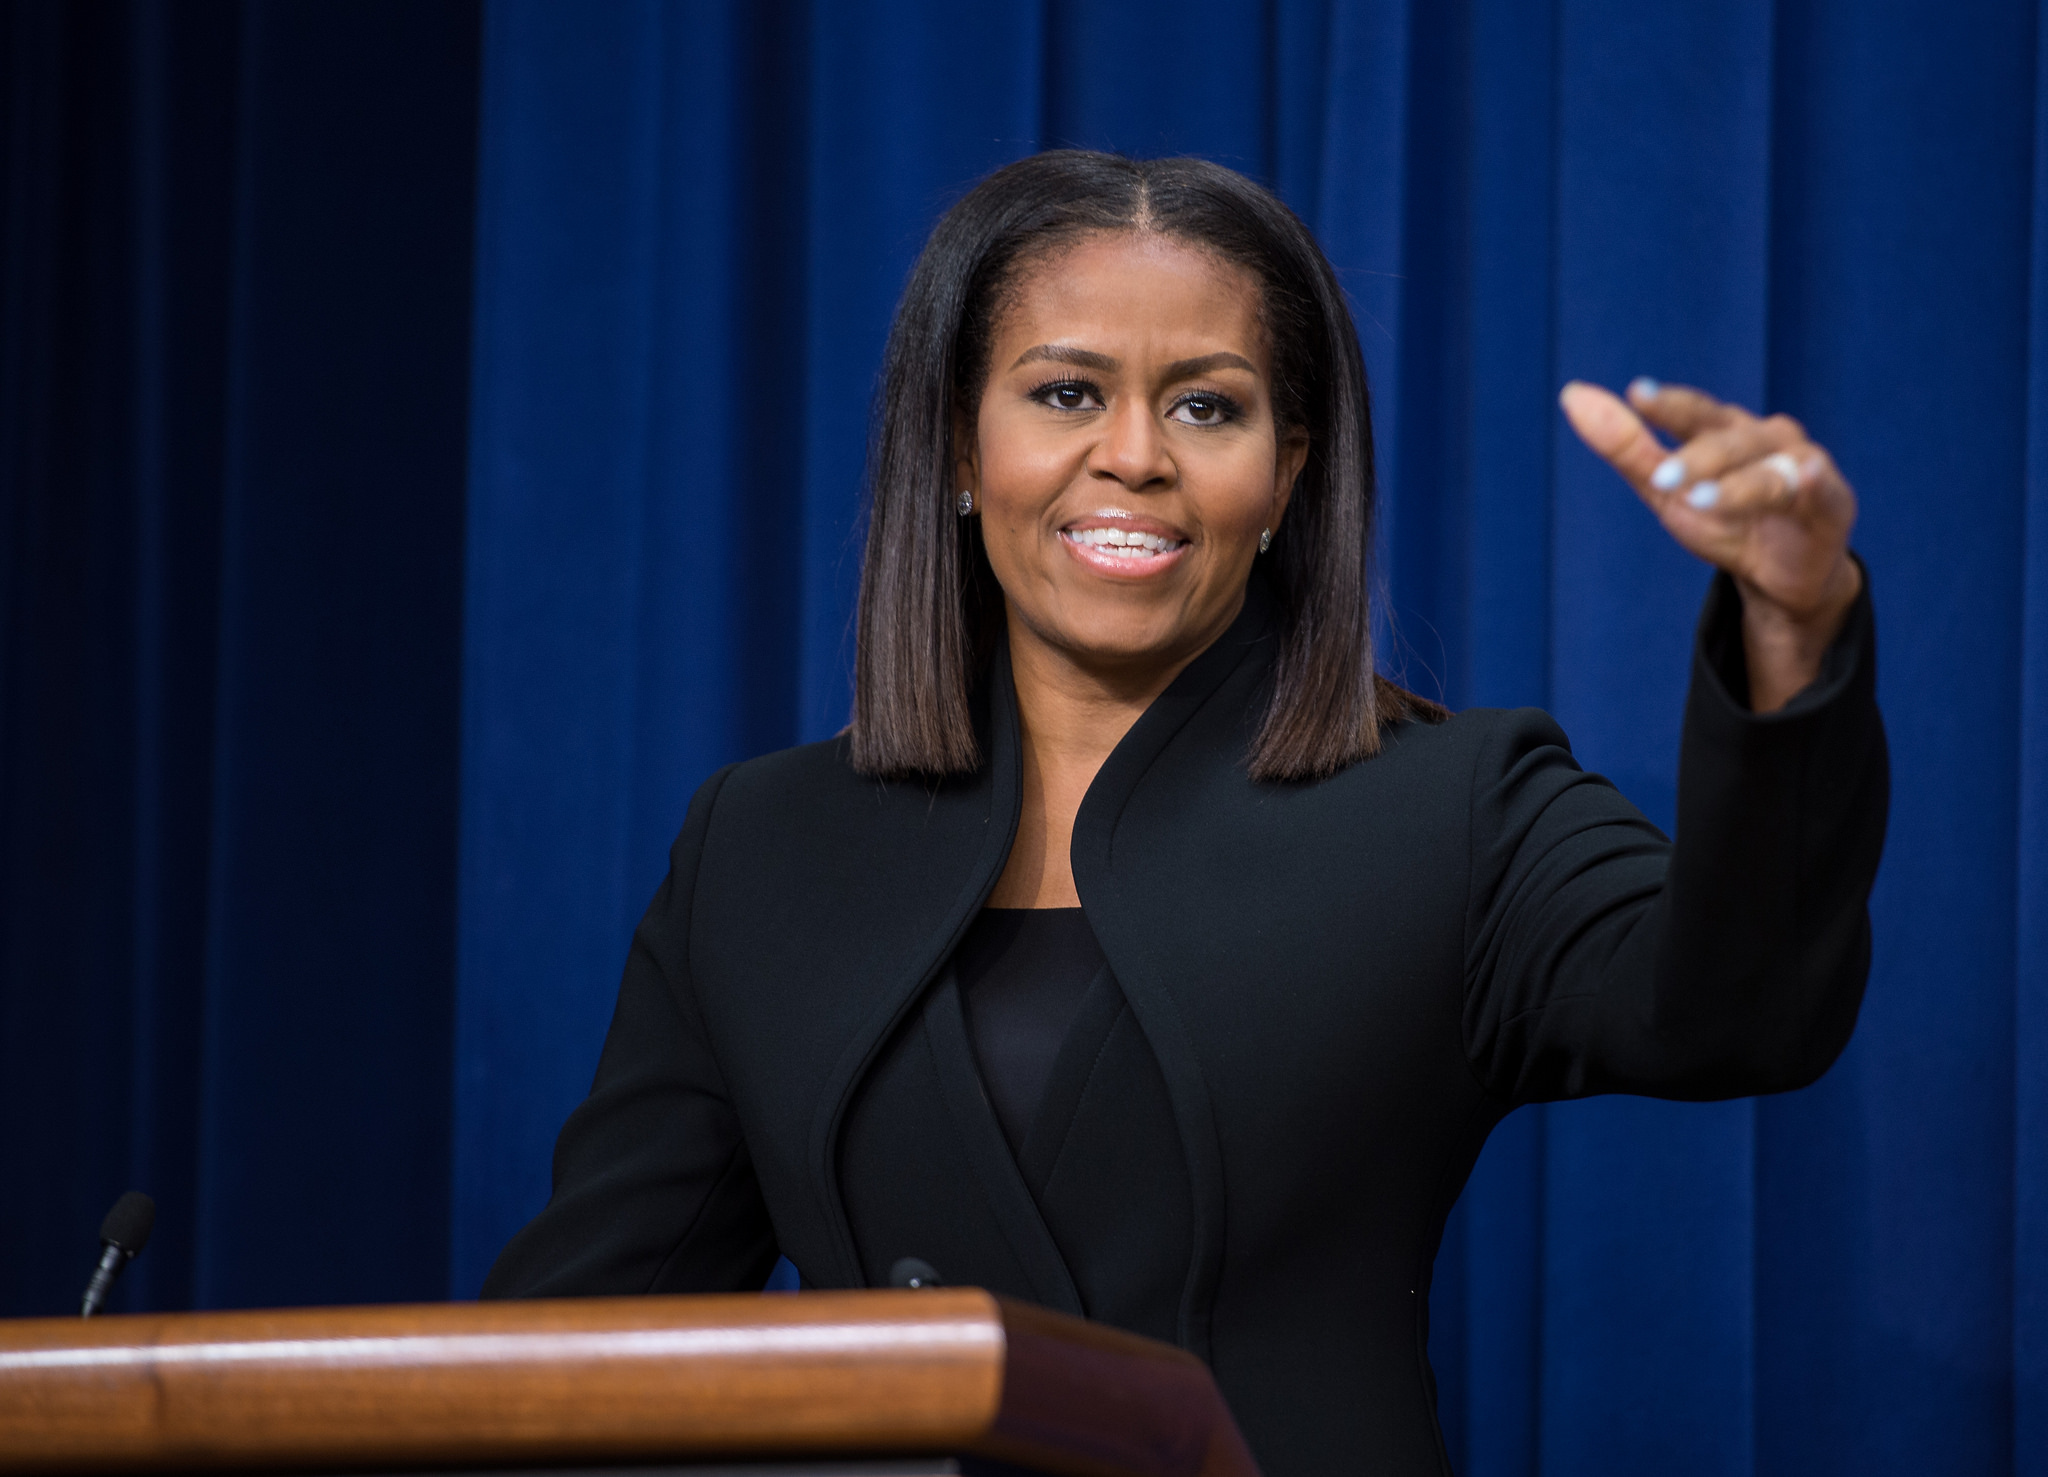 celebrating hidden and modern figures from four eras of space first lady michelle obama speaks after a screening of the film hidden figures at